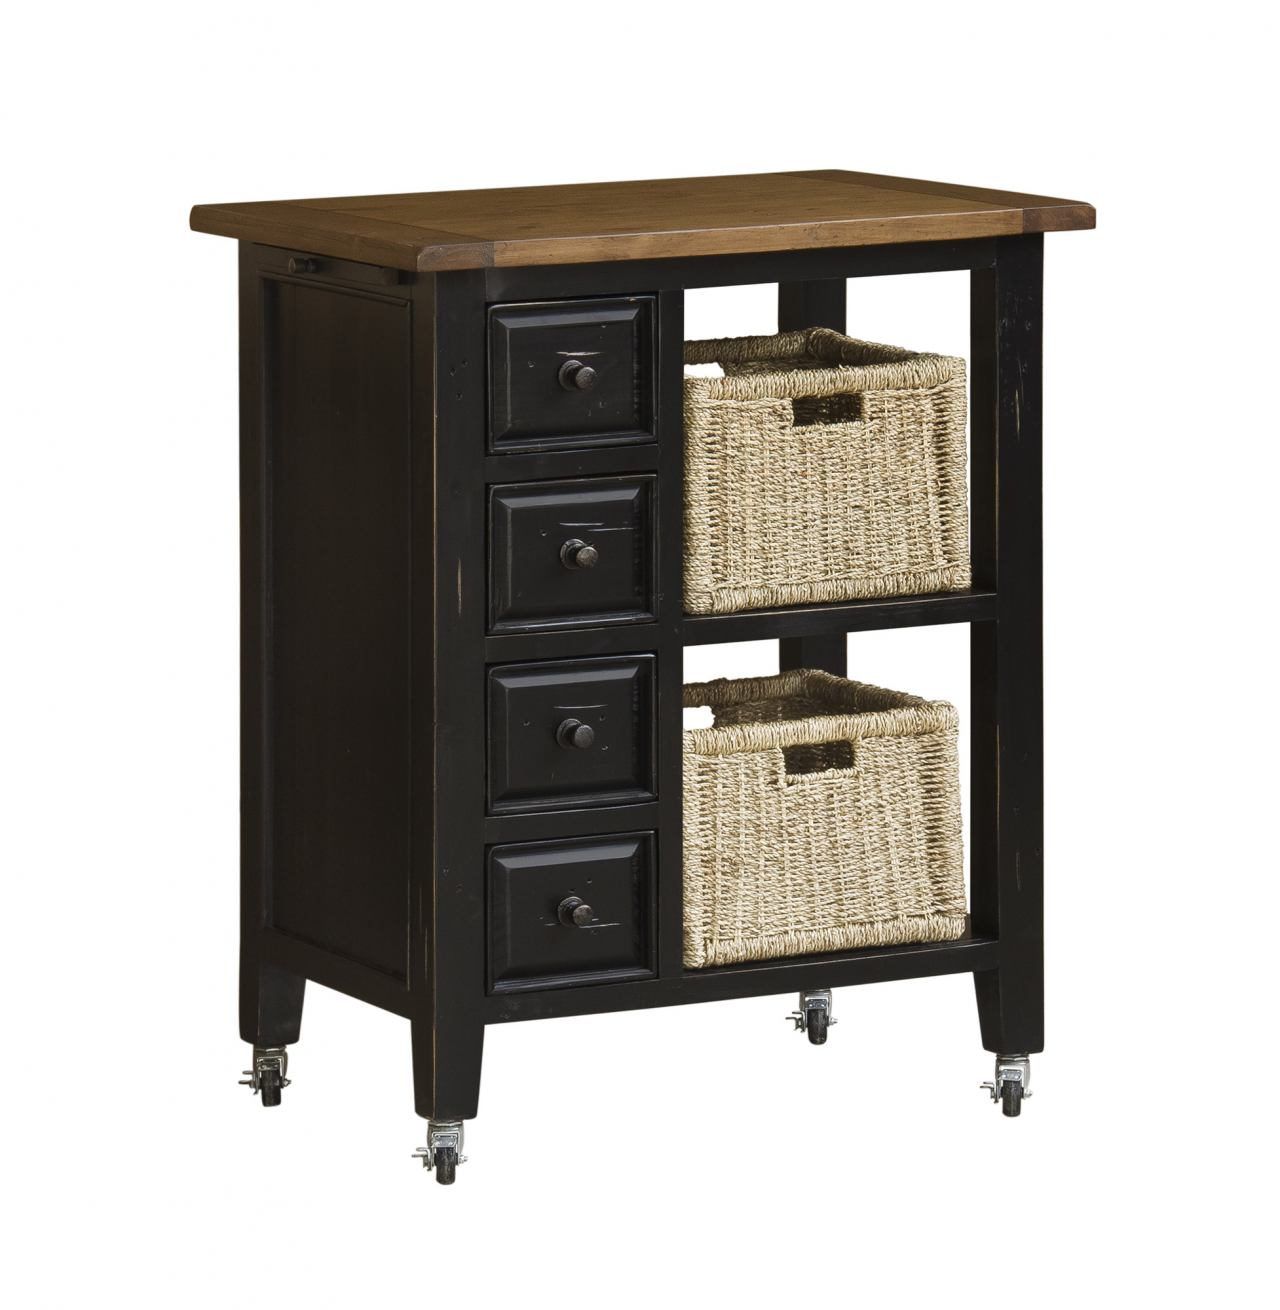 Hillsdale Tuscan Retreat™ Kitchen Cart with Four Drawers & Two Shelves with Two Baskets in Black 5267-883W